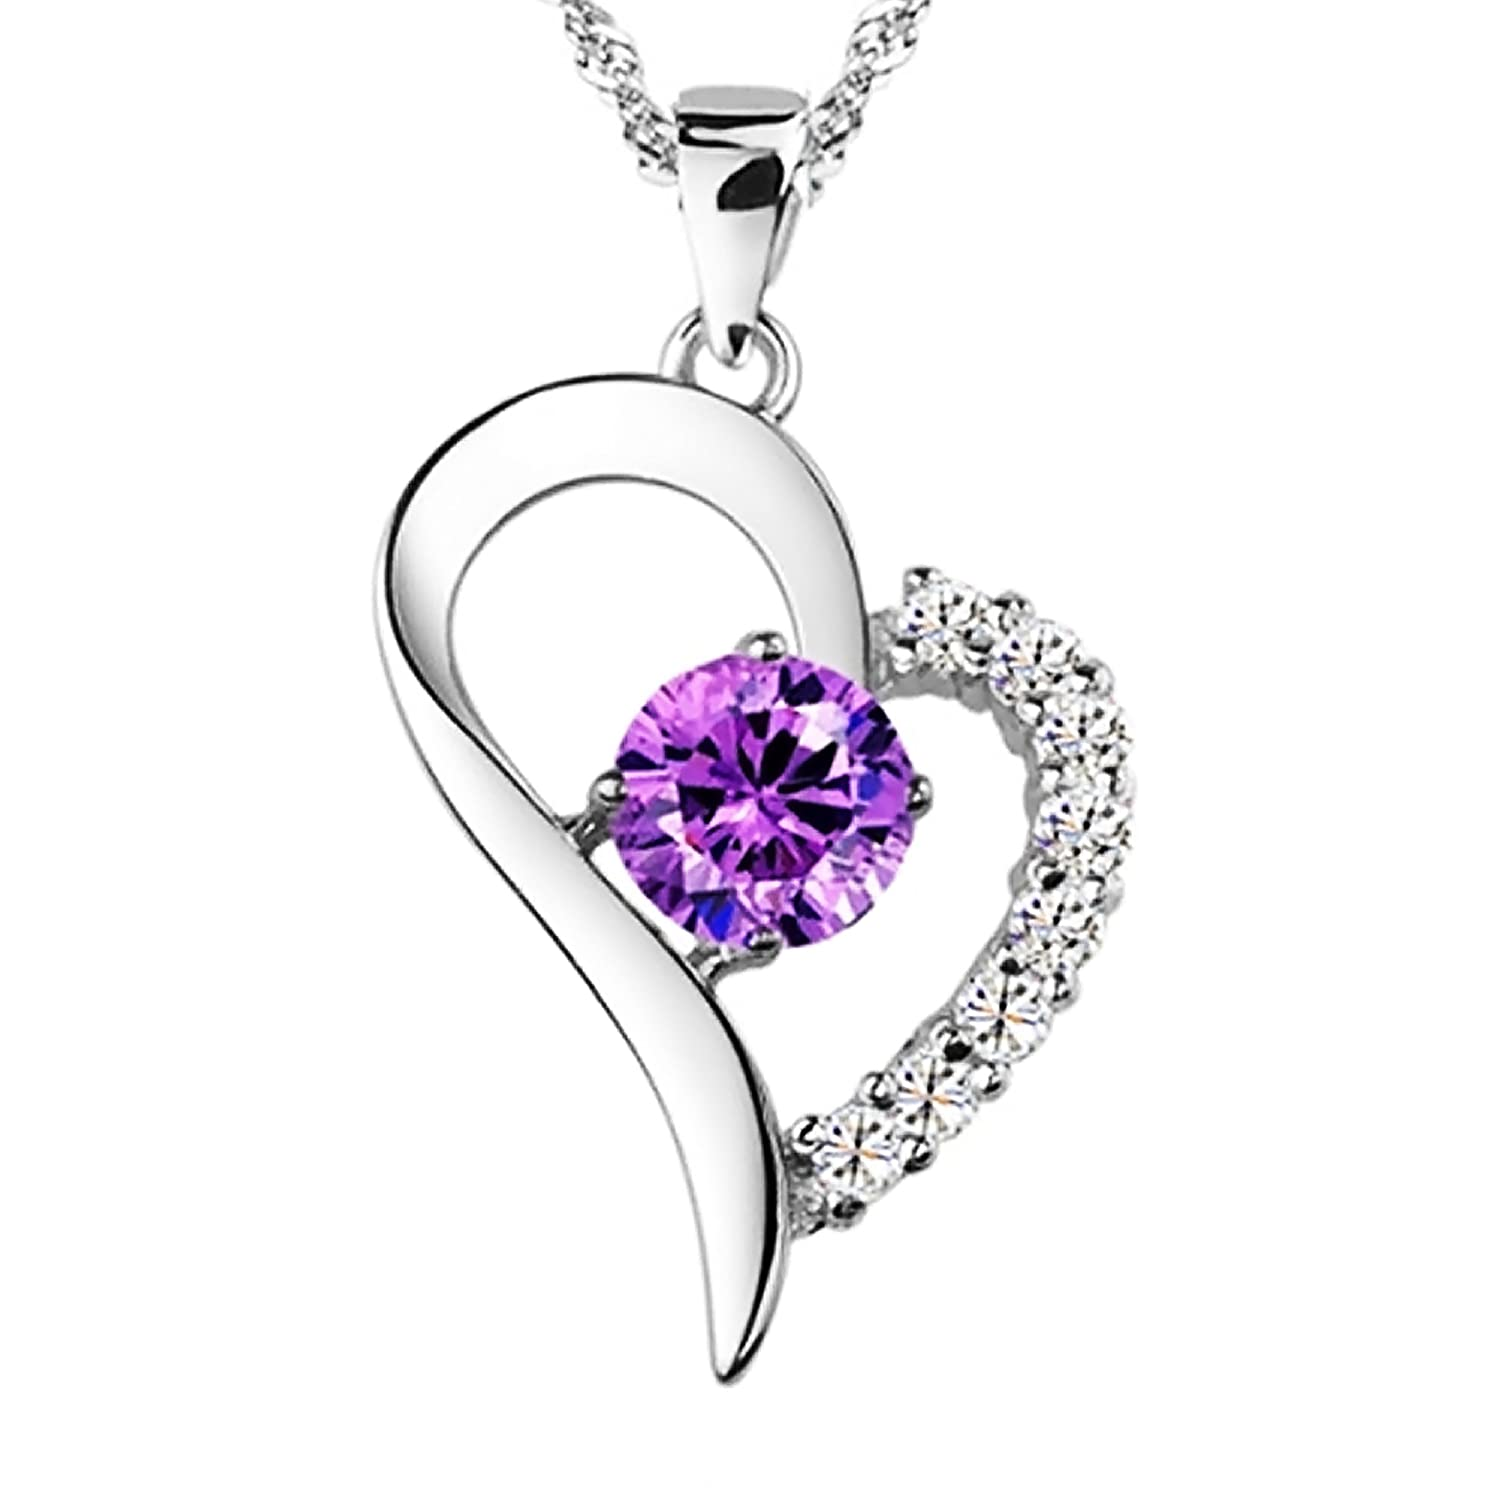 ripka silver gold purple judith db strand stone pendant with diamond necklace two